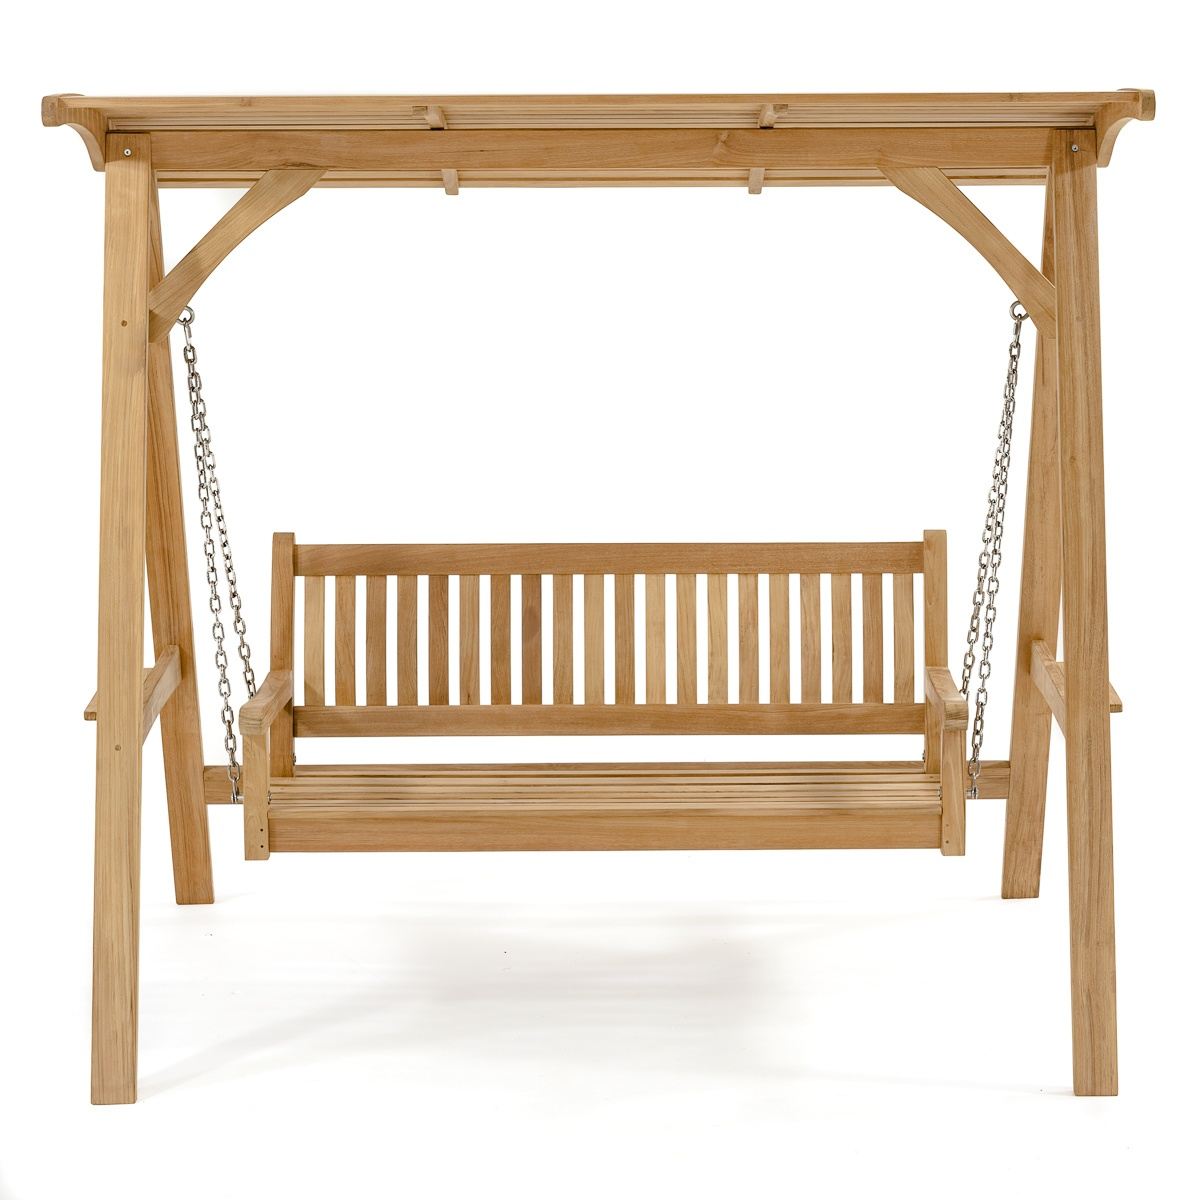 Veranda Teak Swinging Bench With Canopy Westminster Teak